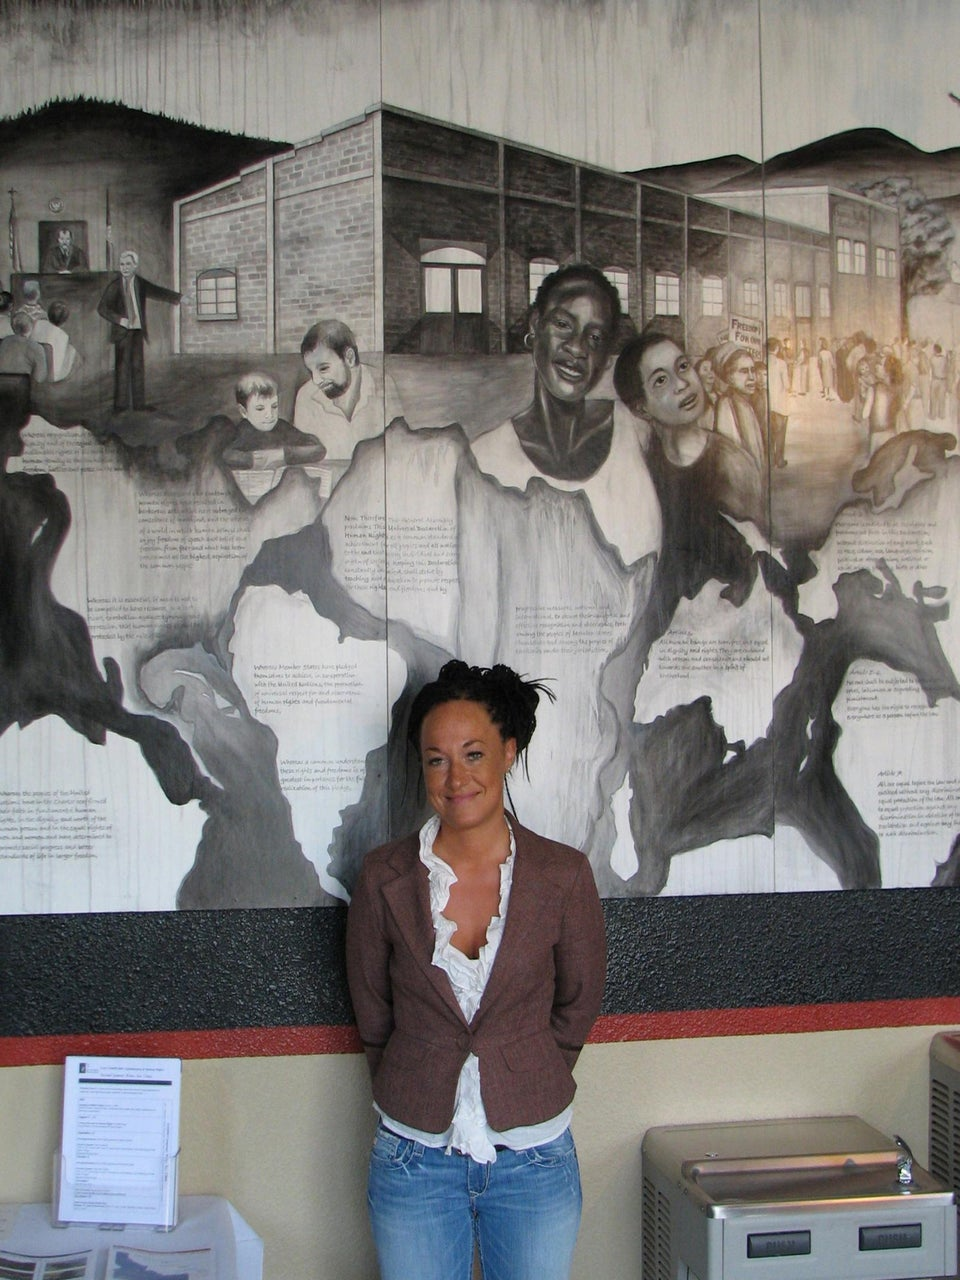 Does Rachel Dolezal's Lie About Her Race Discredit Her Civil Rights Work?